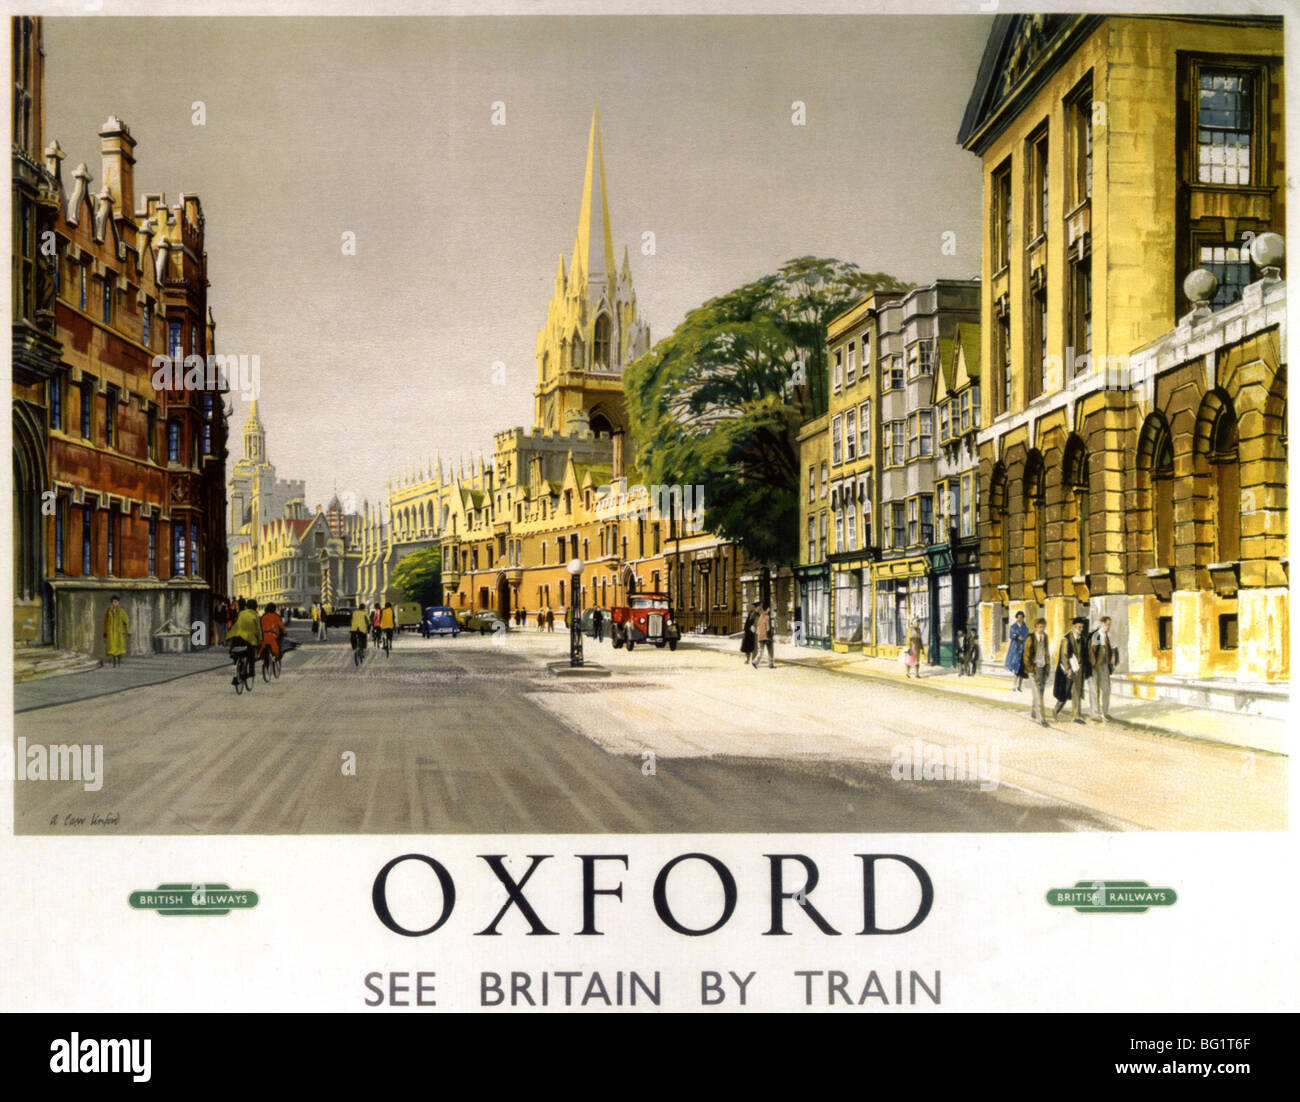 OXFORD in the 1930s as shown on a British railway poster - Stock Image